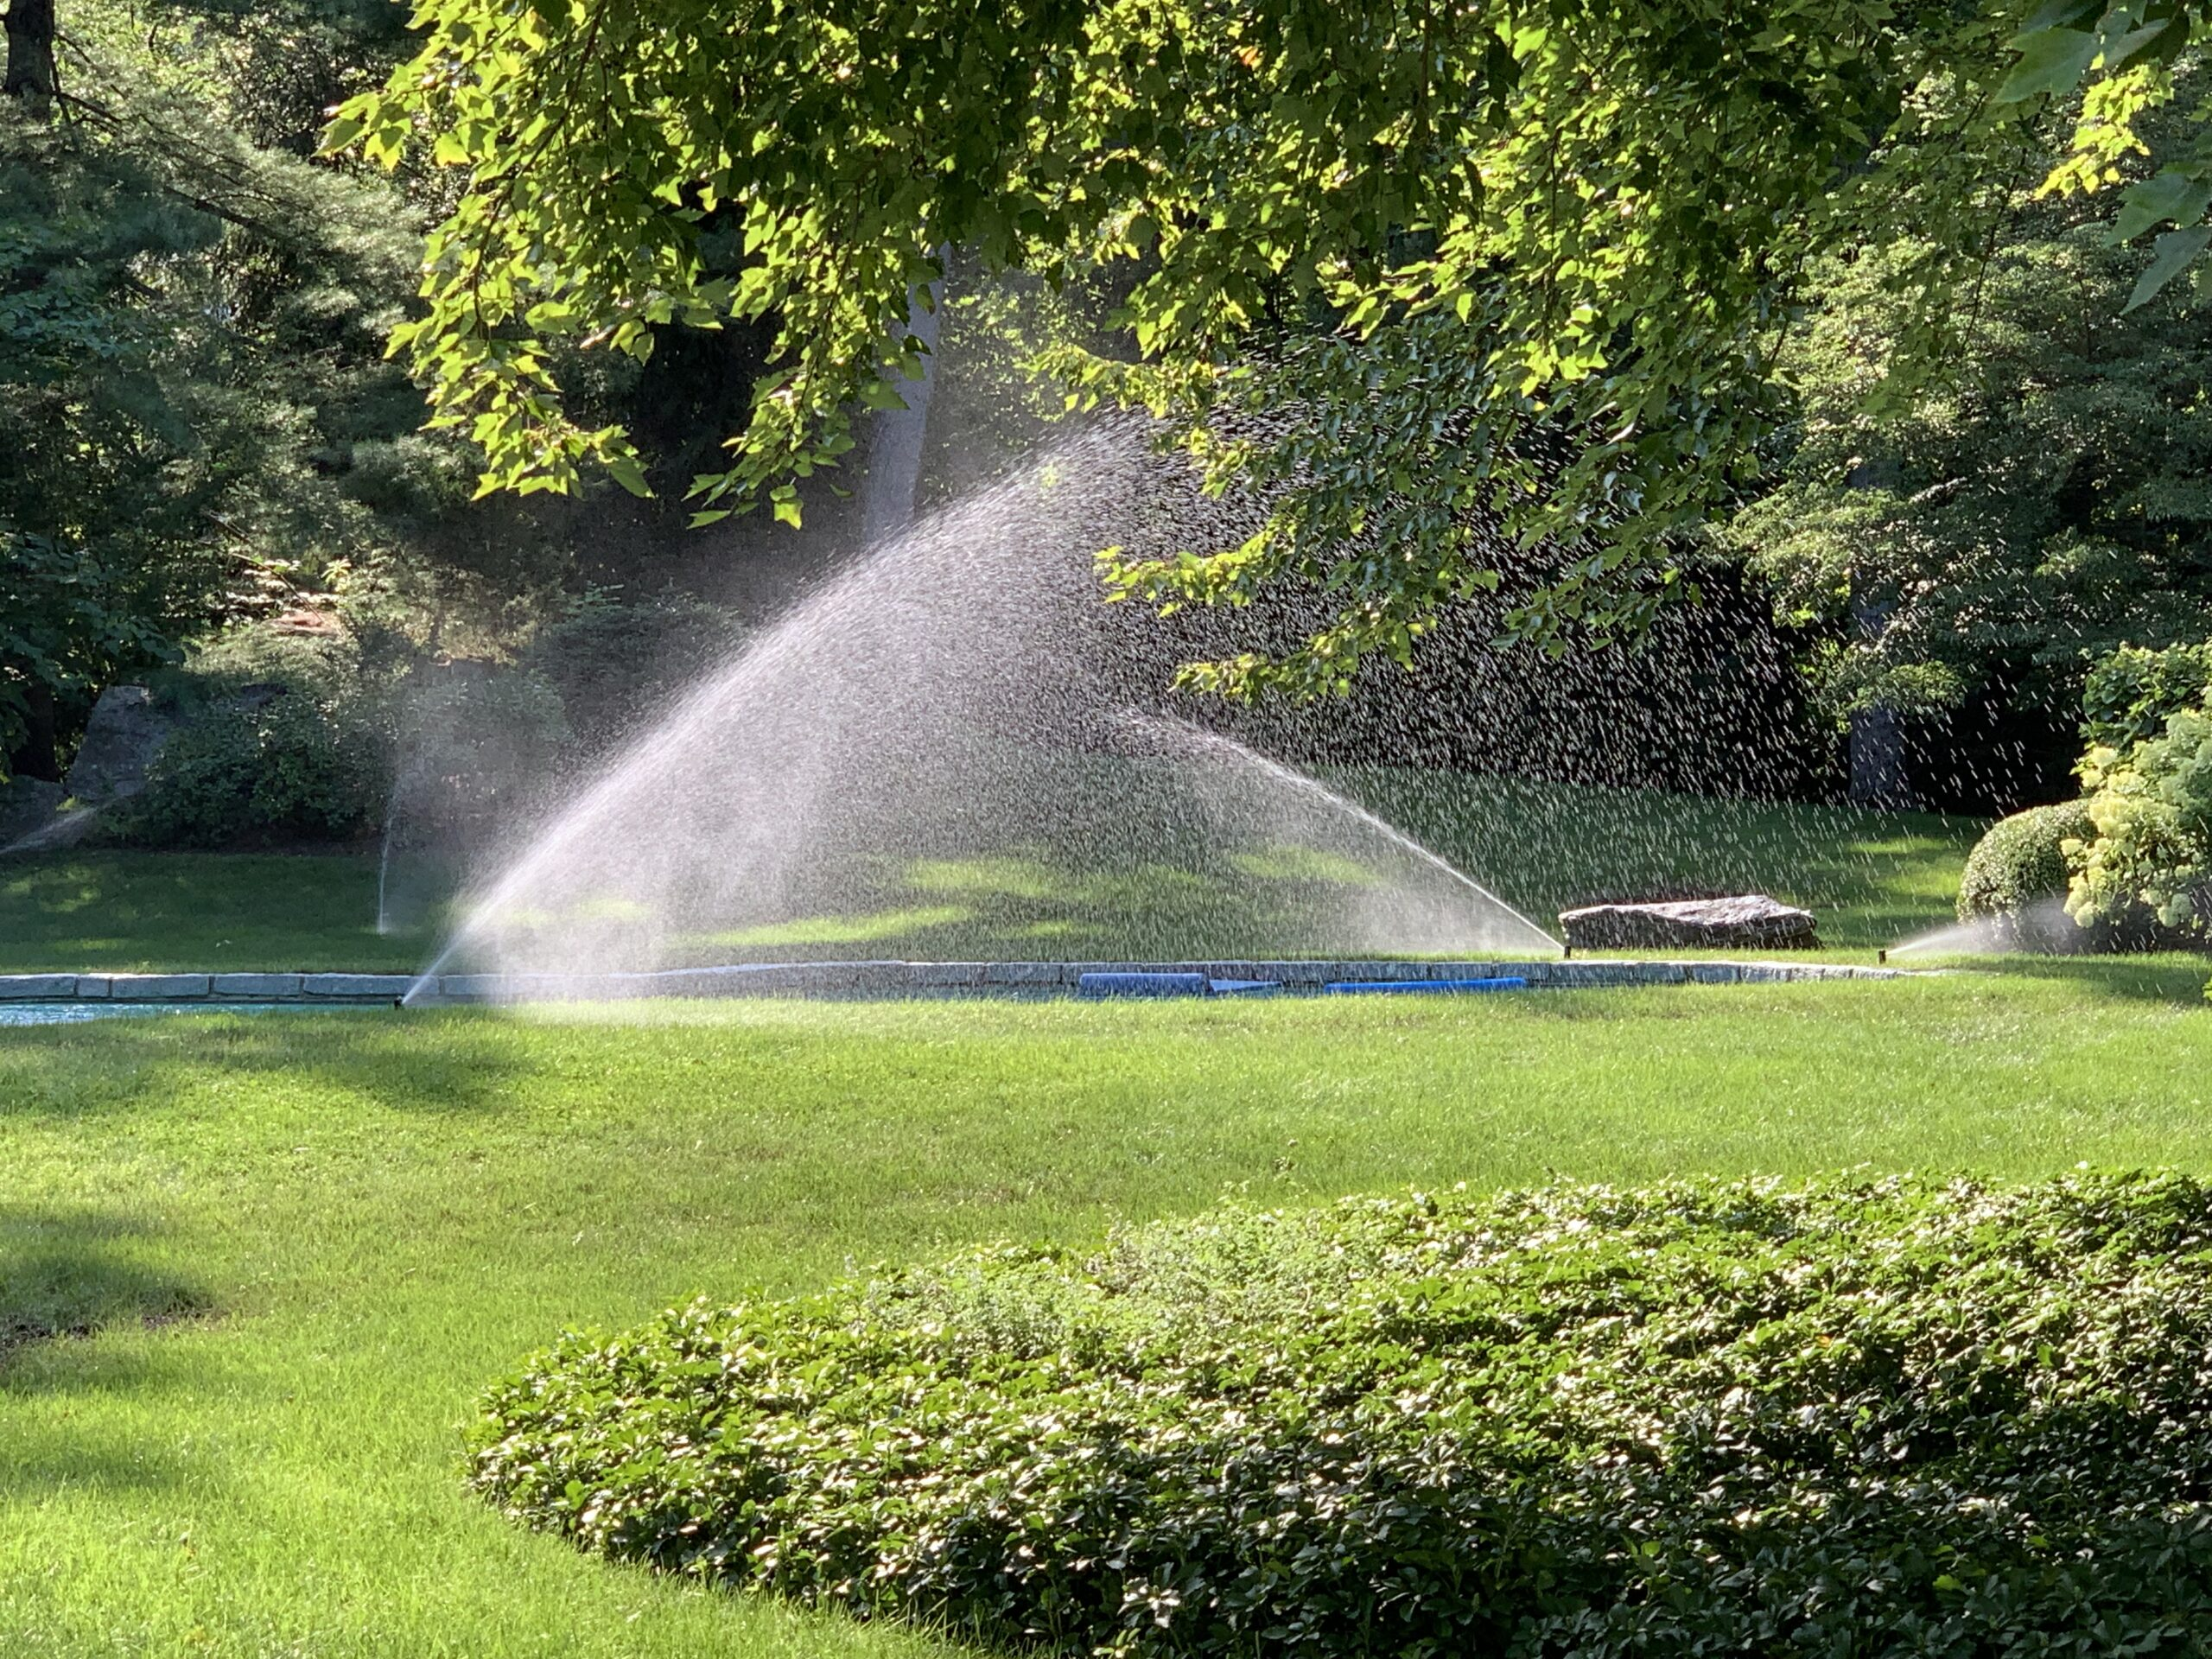 smart sprinklers run only when the weather is dry. They do not overwater